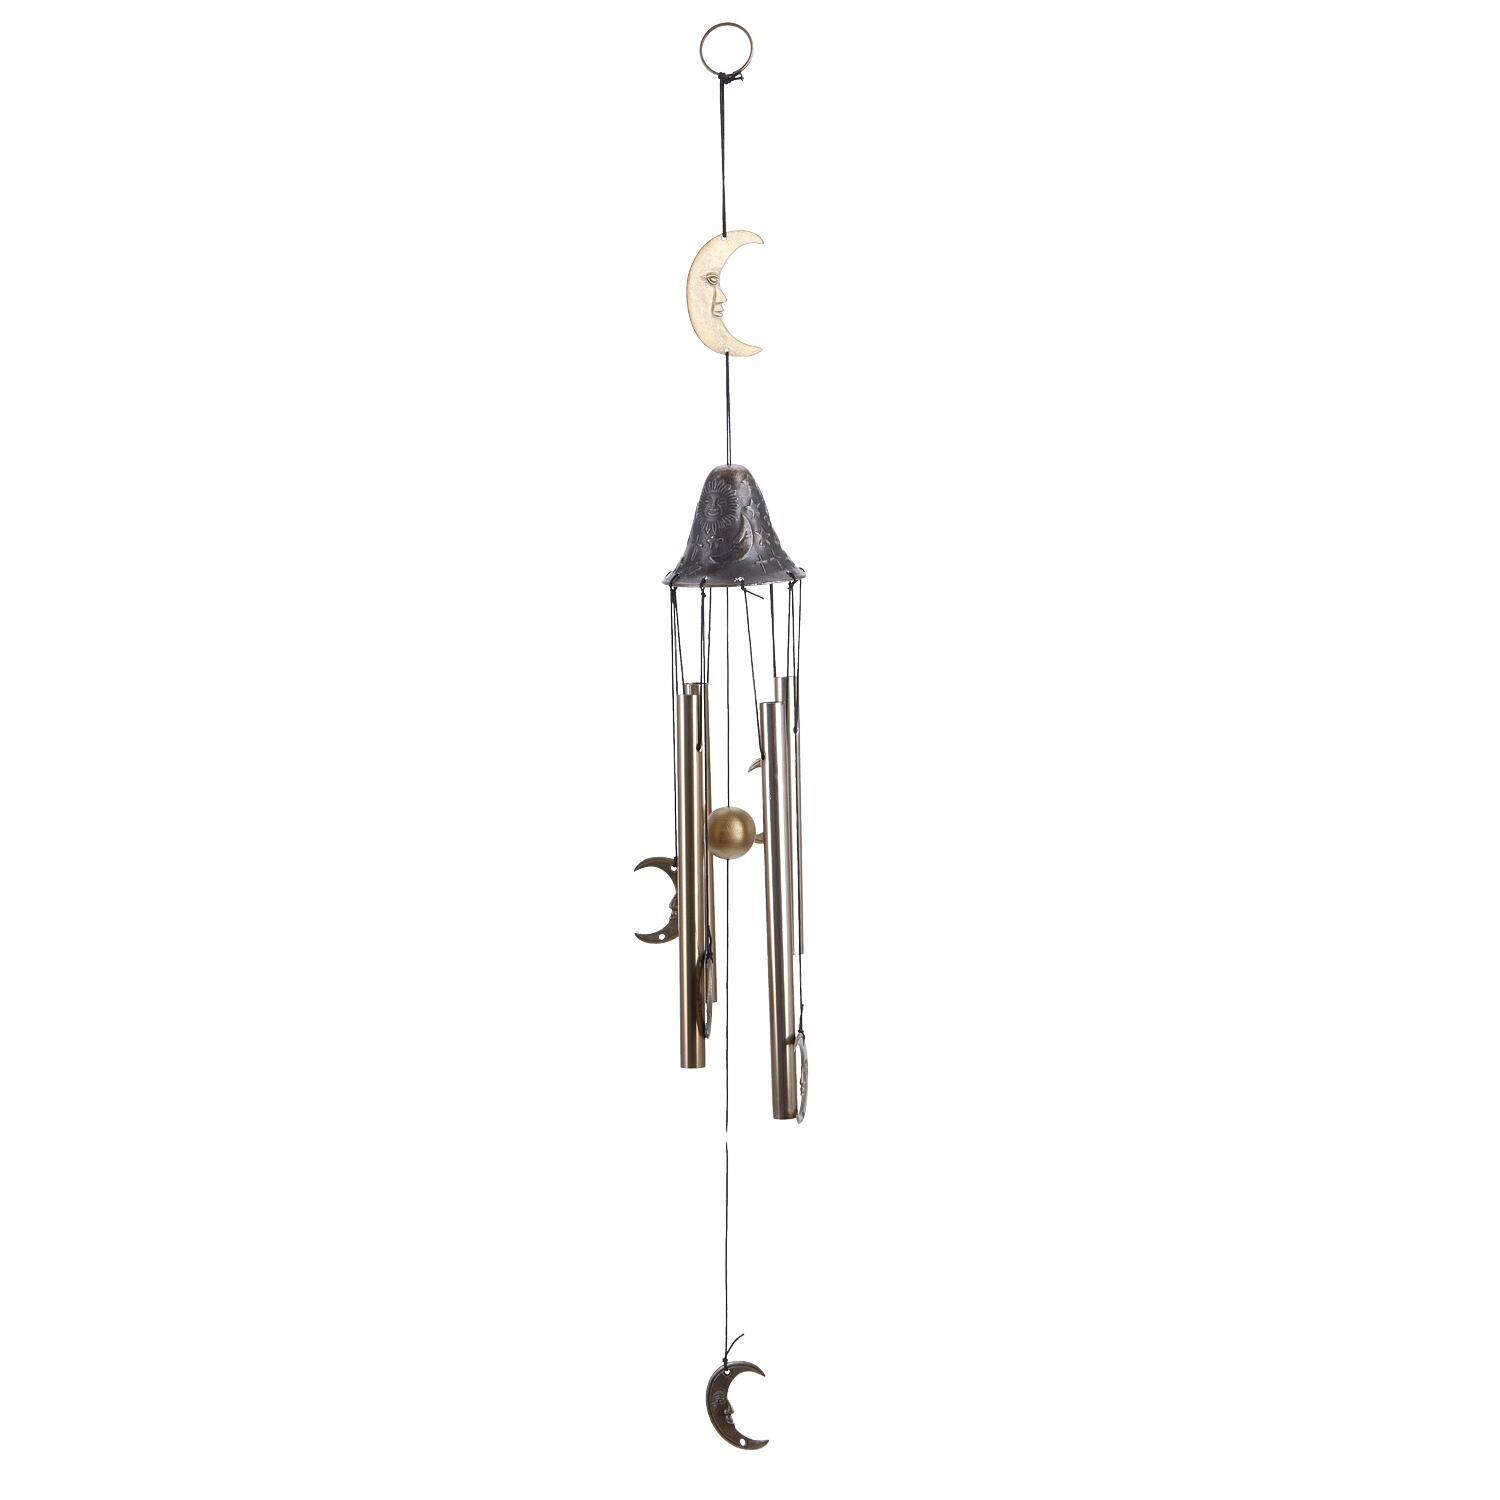 Outdoor Wind Chime, Classical Moon Wind Chimes 27 Inches, Amazing Grace Wind Chimes For Garden, Patio And Home Decor By Rainning.